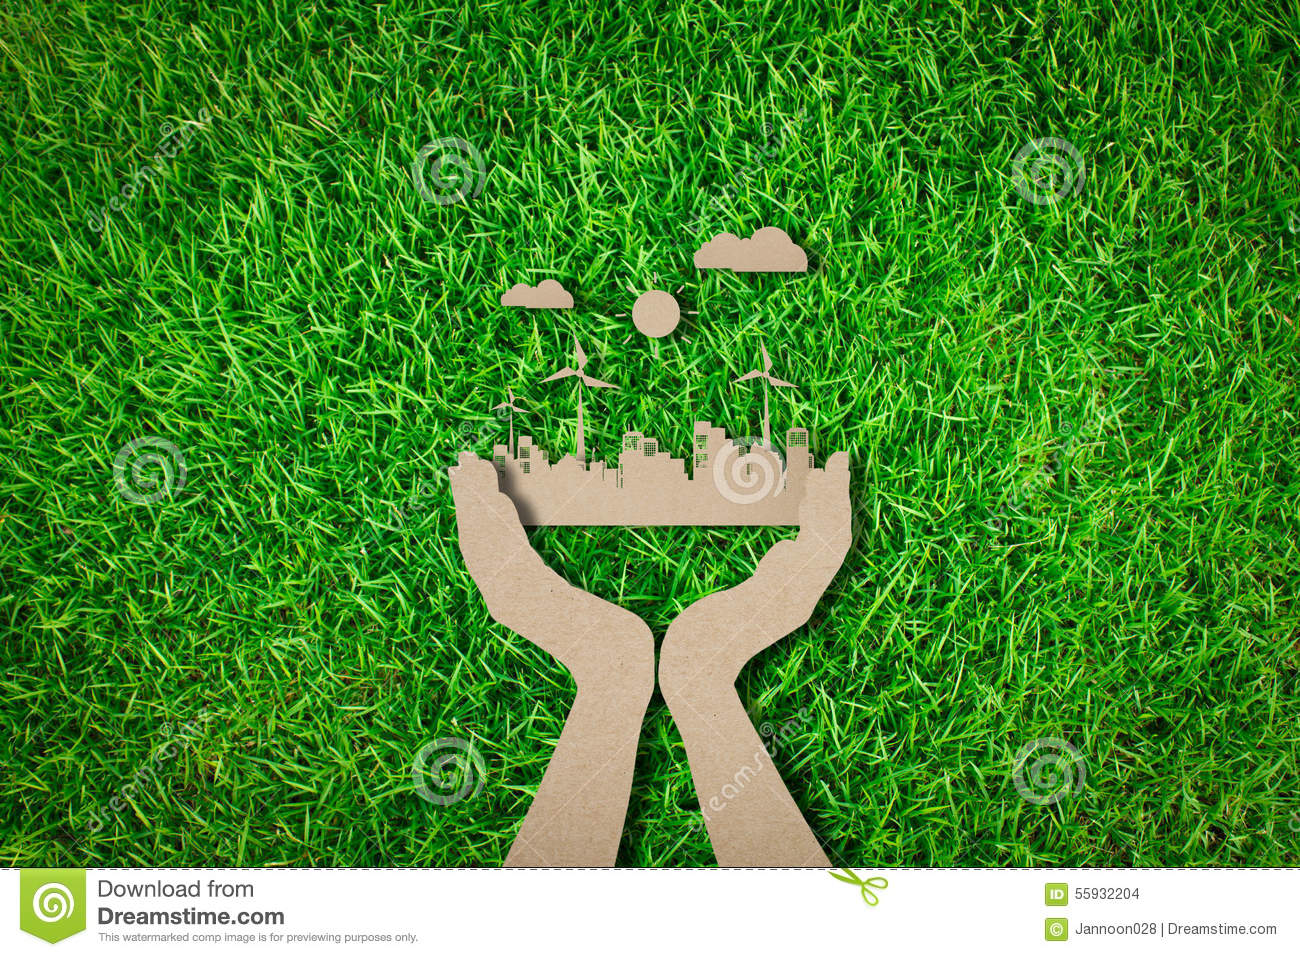 mrs turner cutting the grass essay Both the purple pileus and mrs turner cutting the grass have many similarities, of which the most significant is the way both stories are concerned about how other people judge the appearances and values of the central characters.